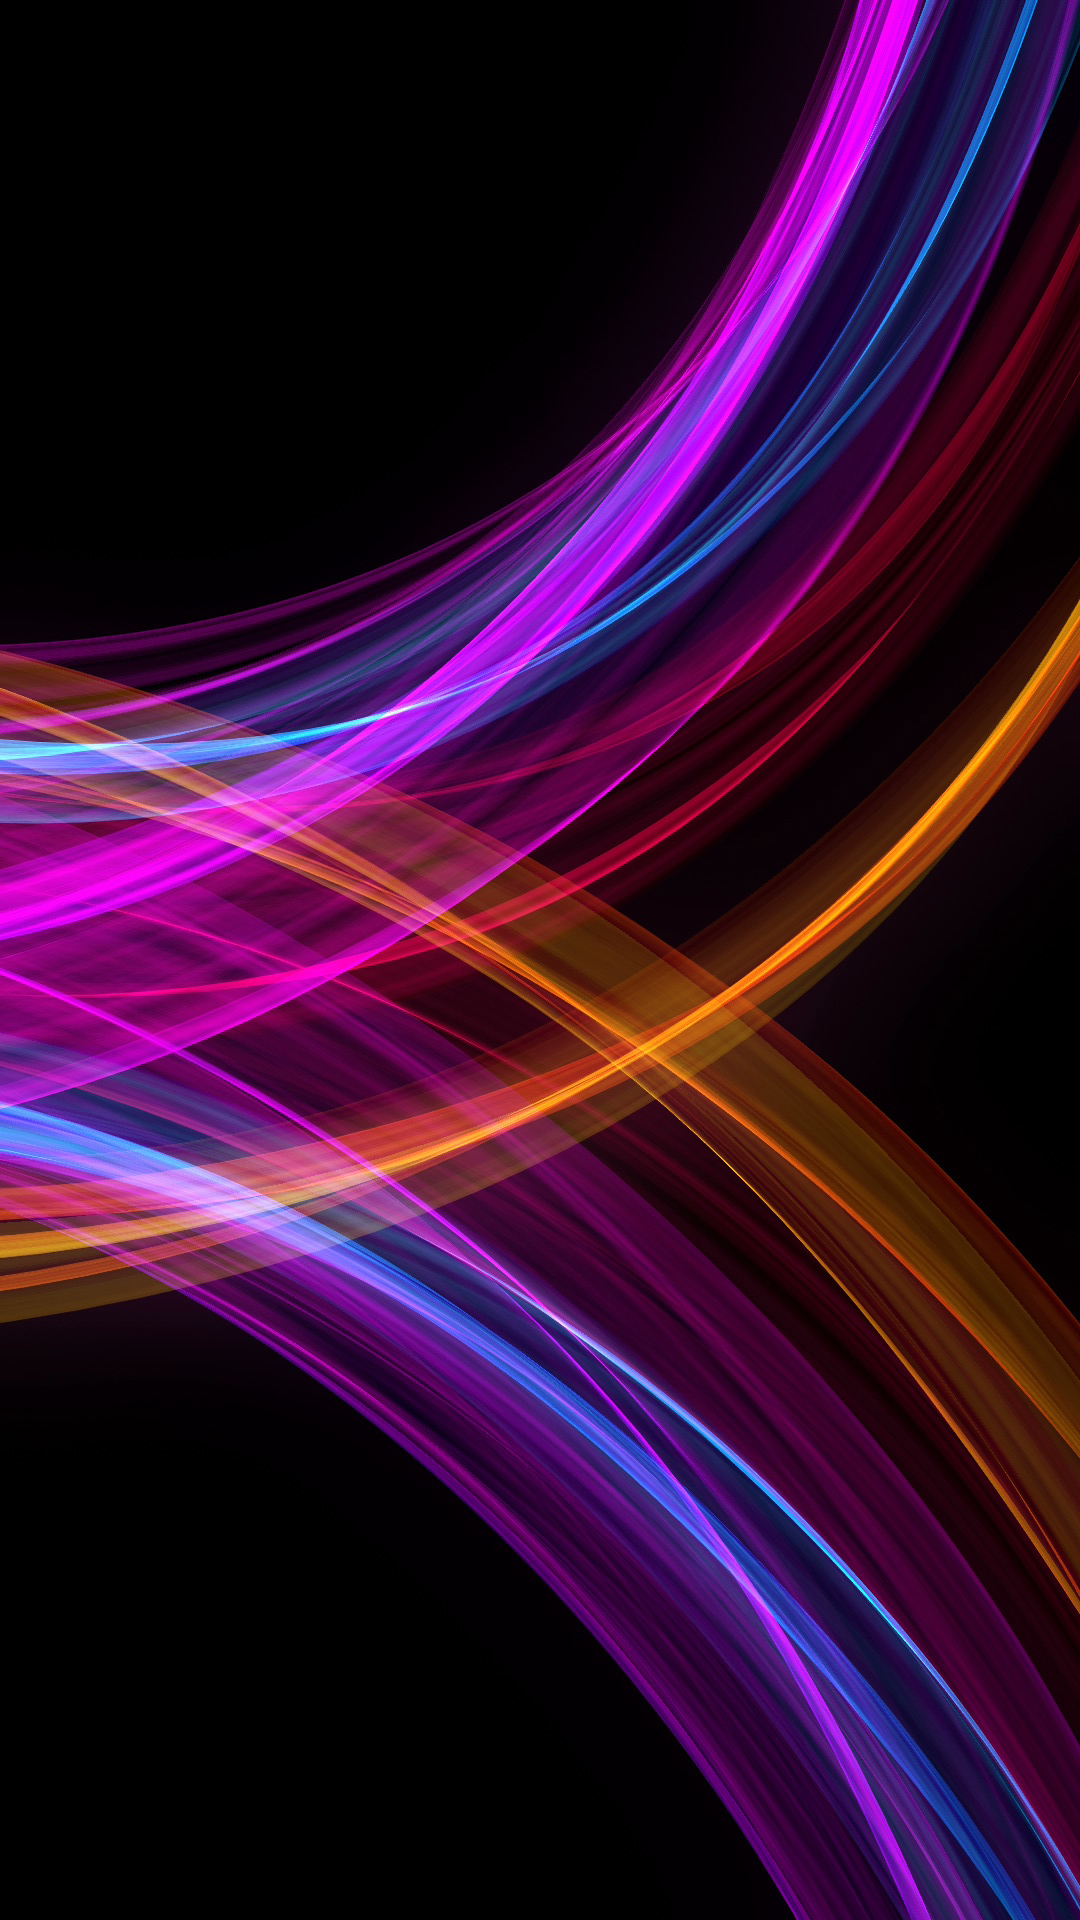 Amoled Neon Waves 1080x1920 Live Wallpaper In Comments I Redd It Submitted By Livewallpaper Wallpaper Images Hd Best Wallpapers Android Android Wallpaper